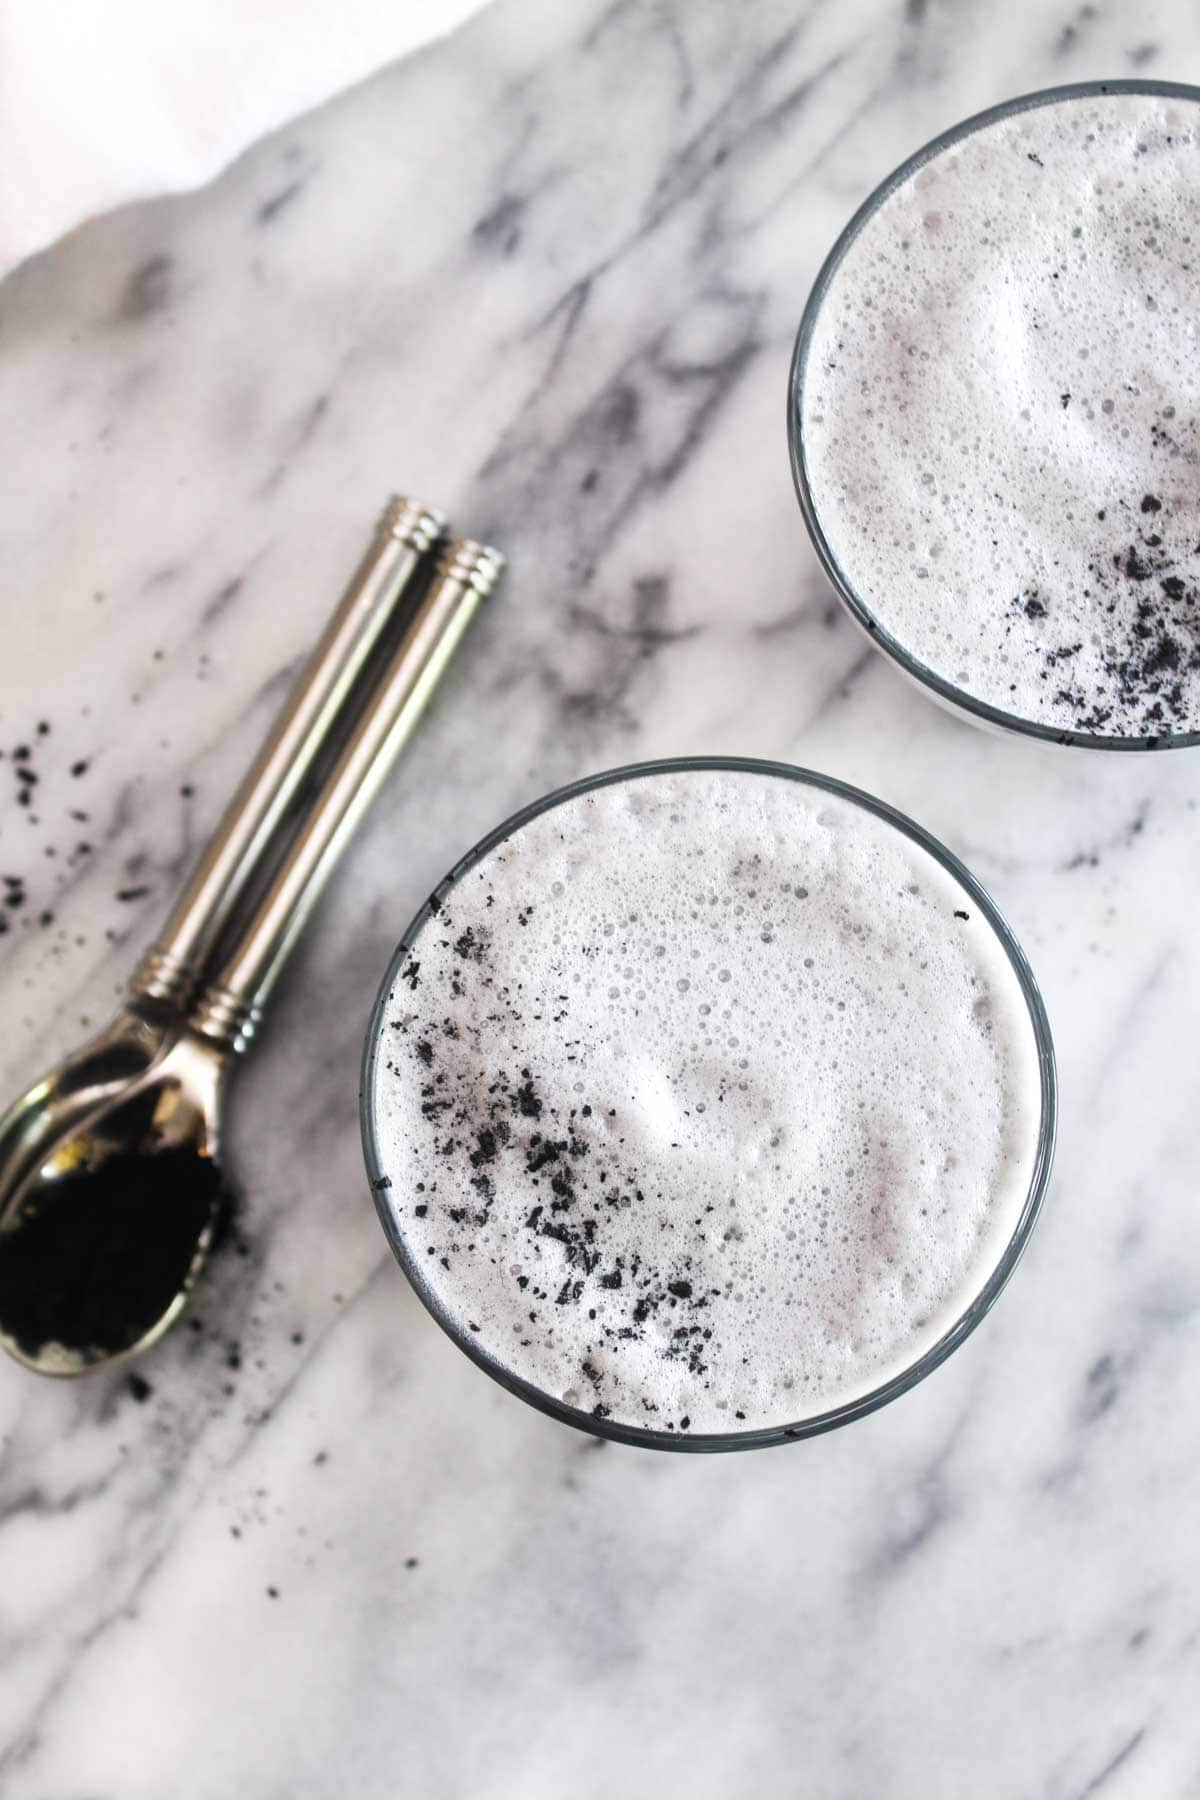 A top view of two black charcoal latte with foam and charcoal sprinkled on top.